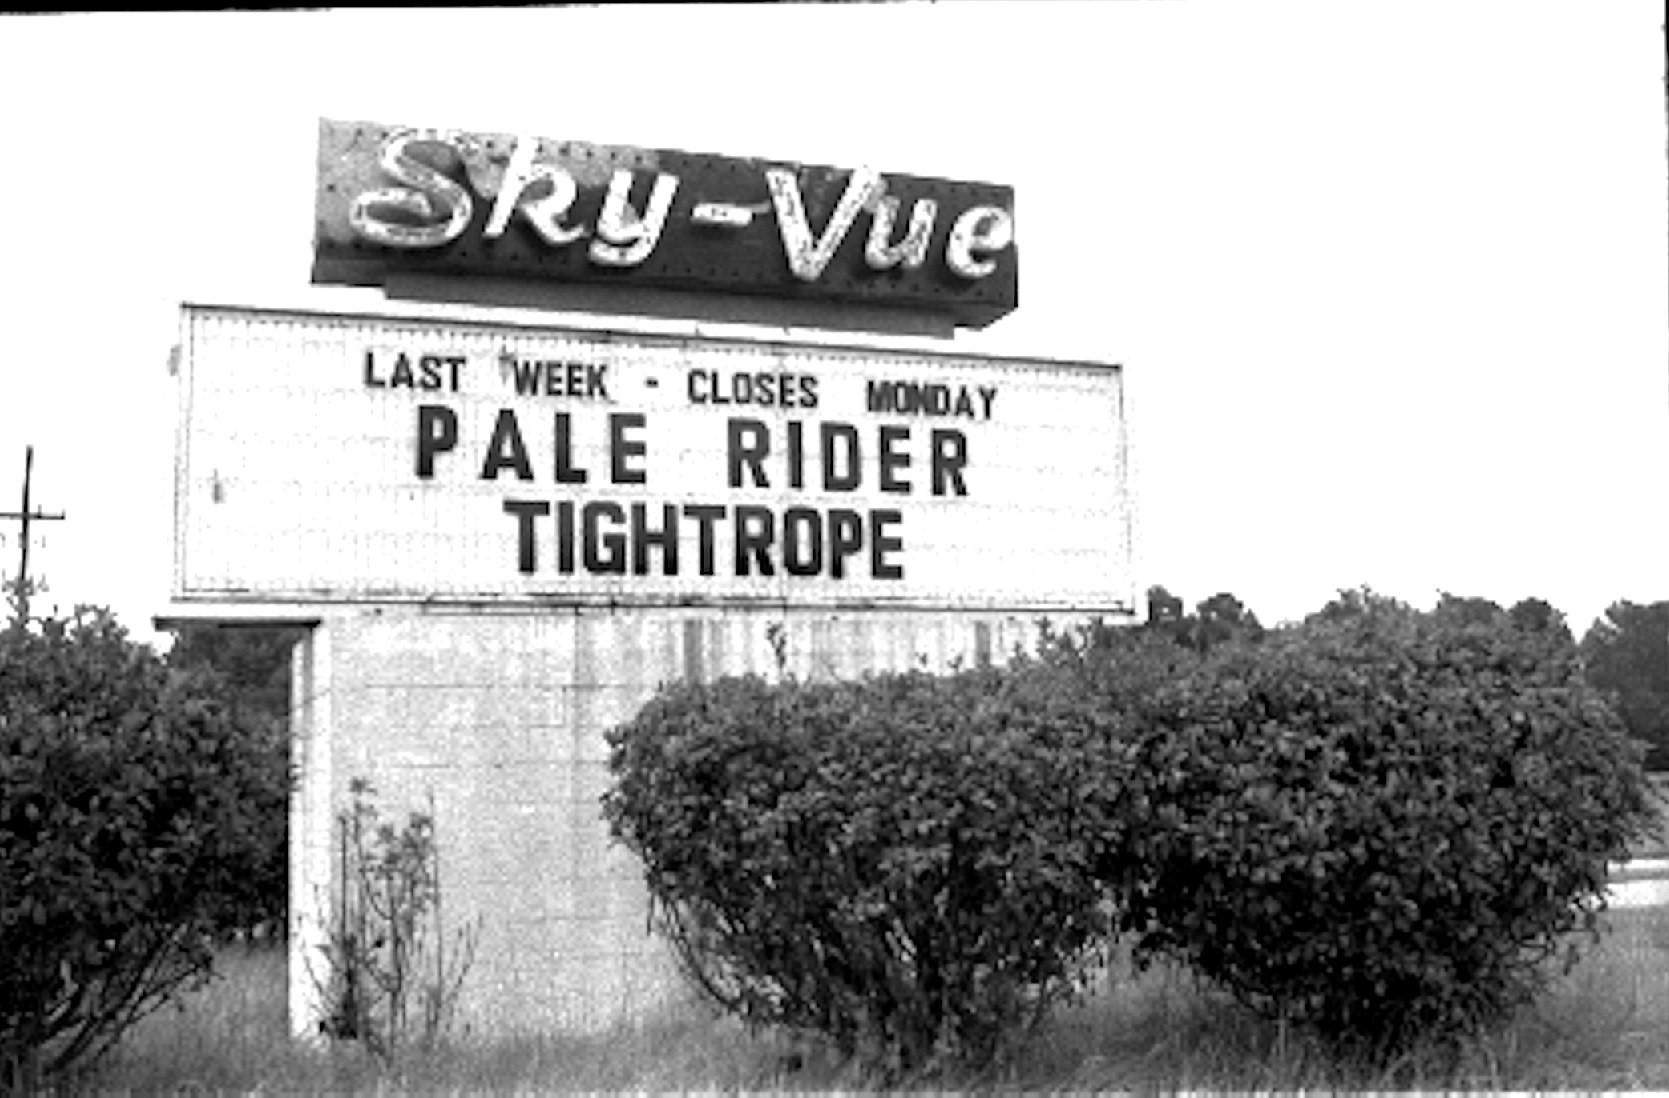 The Sky-Vue marquee advertises the last film to be shown and that the theater would close that week.